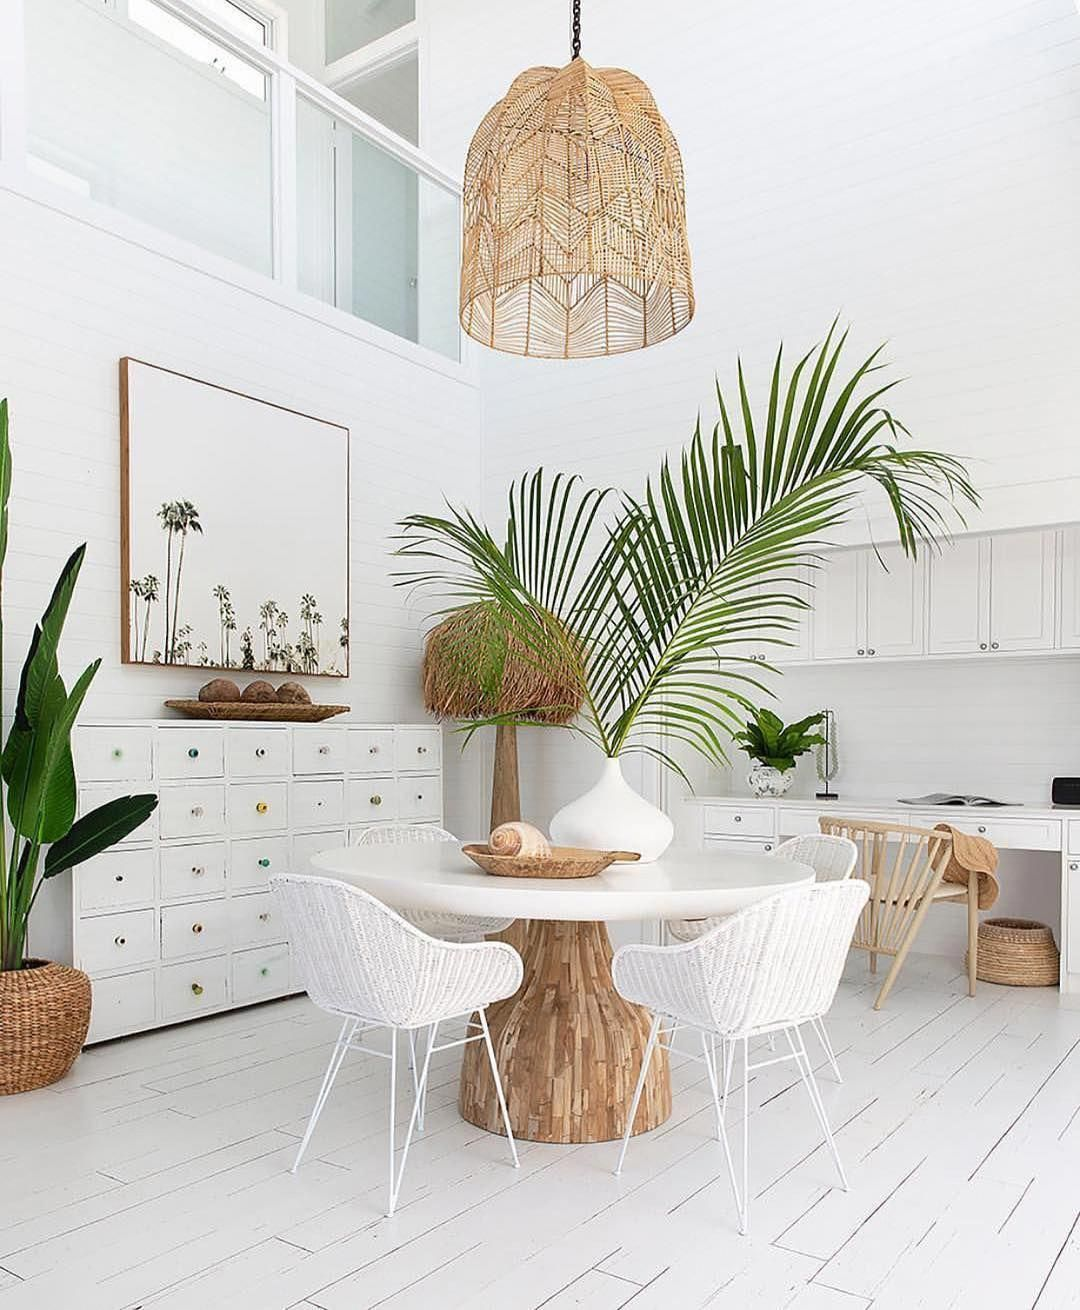 [New] The 10 Best Home Decor (with Pictures) -  Back to work but wishing you werent? Same! Try day dreaming of this gorgeous space instead via @uniqwacollections and photo by @villastyling . . #interiordesign #interiordesigner #interiorinspiration #design #interiors #decor #finditstyleit #interior123 #simplicity #minimalist #interiordesigncommunity #interiordesigntrends #interiordesigninstitute #designelements #interiorstyle #mydomaine #apartmenttherapy #i #EssentialsHomeDecorMedford